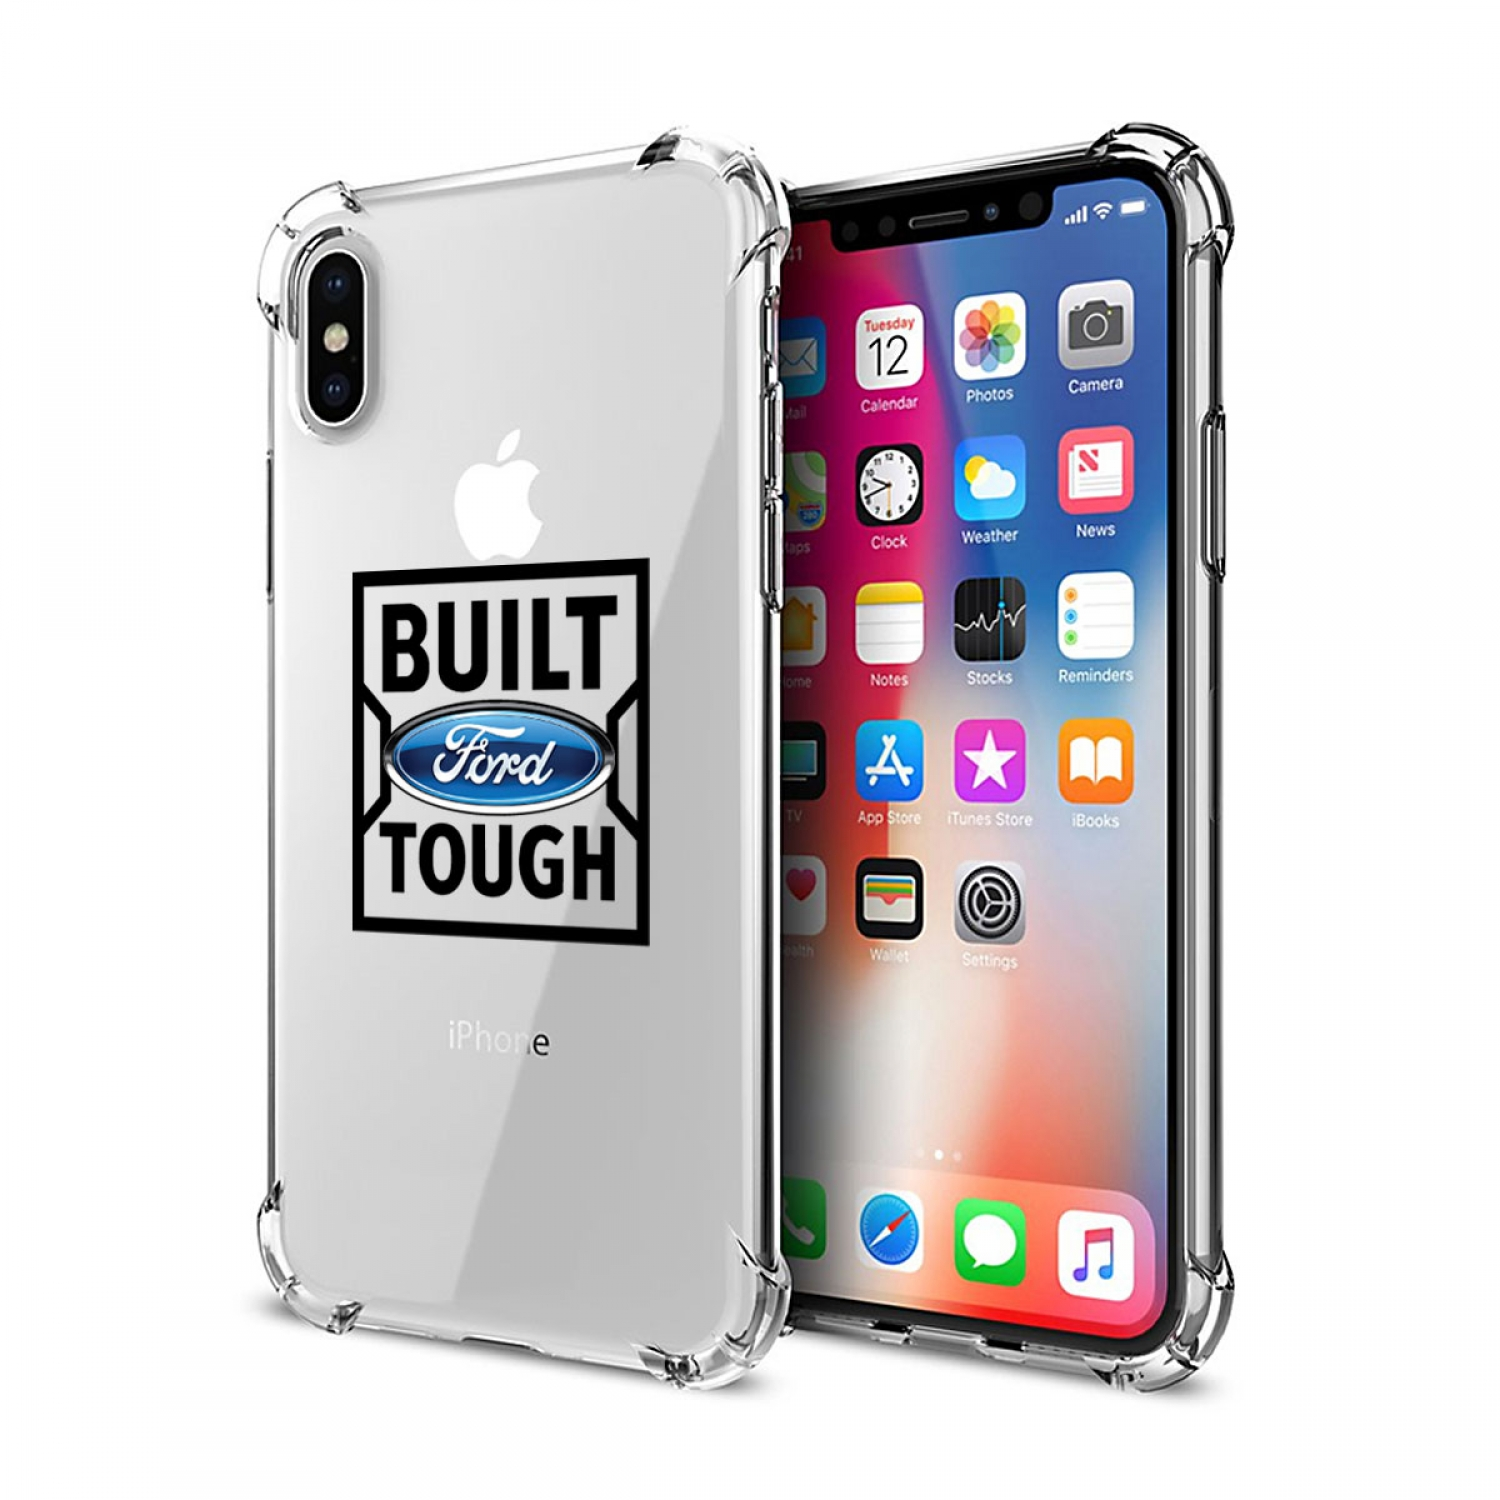 Ford Built Ford Tough iPhone X Clear TPU Shockproof Cell Phone Case